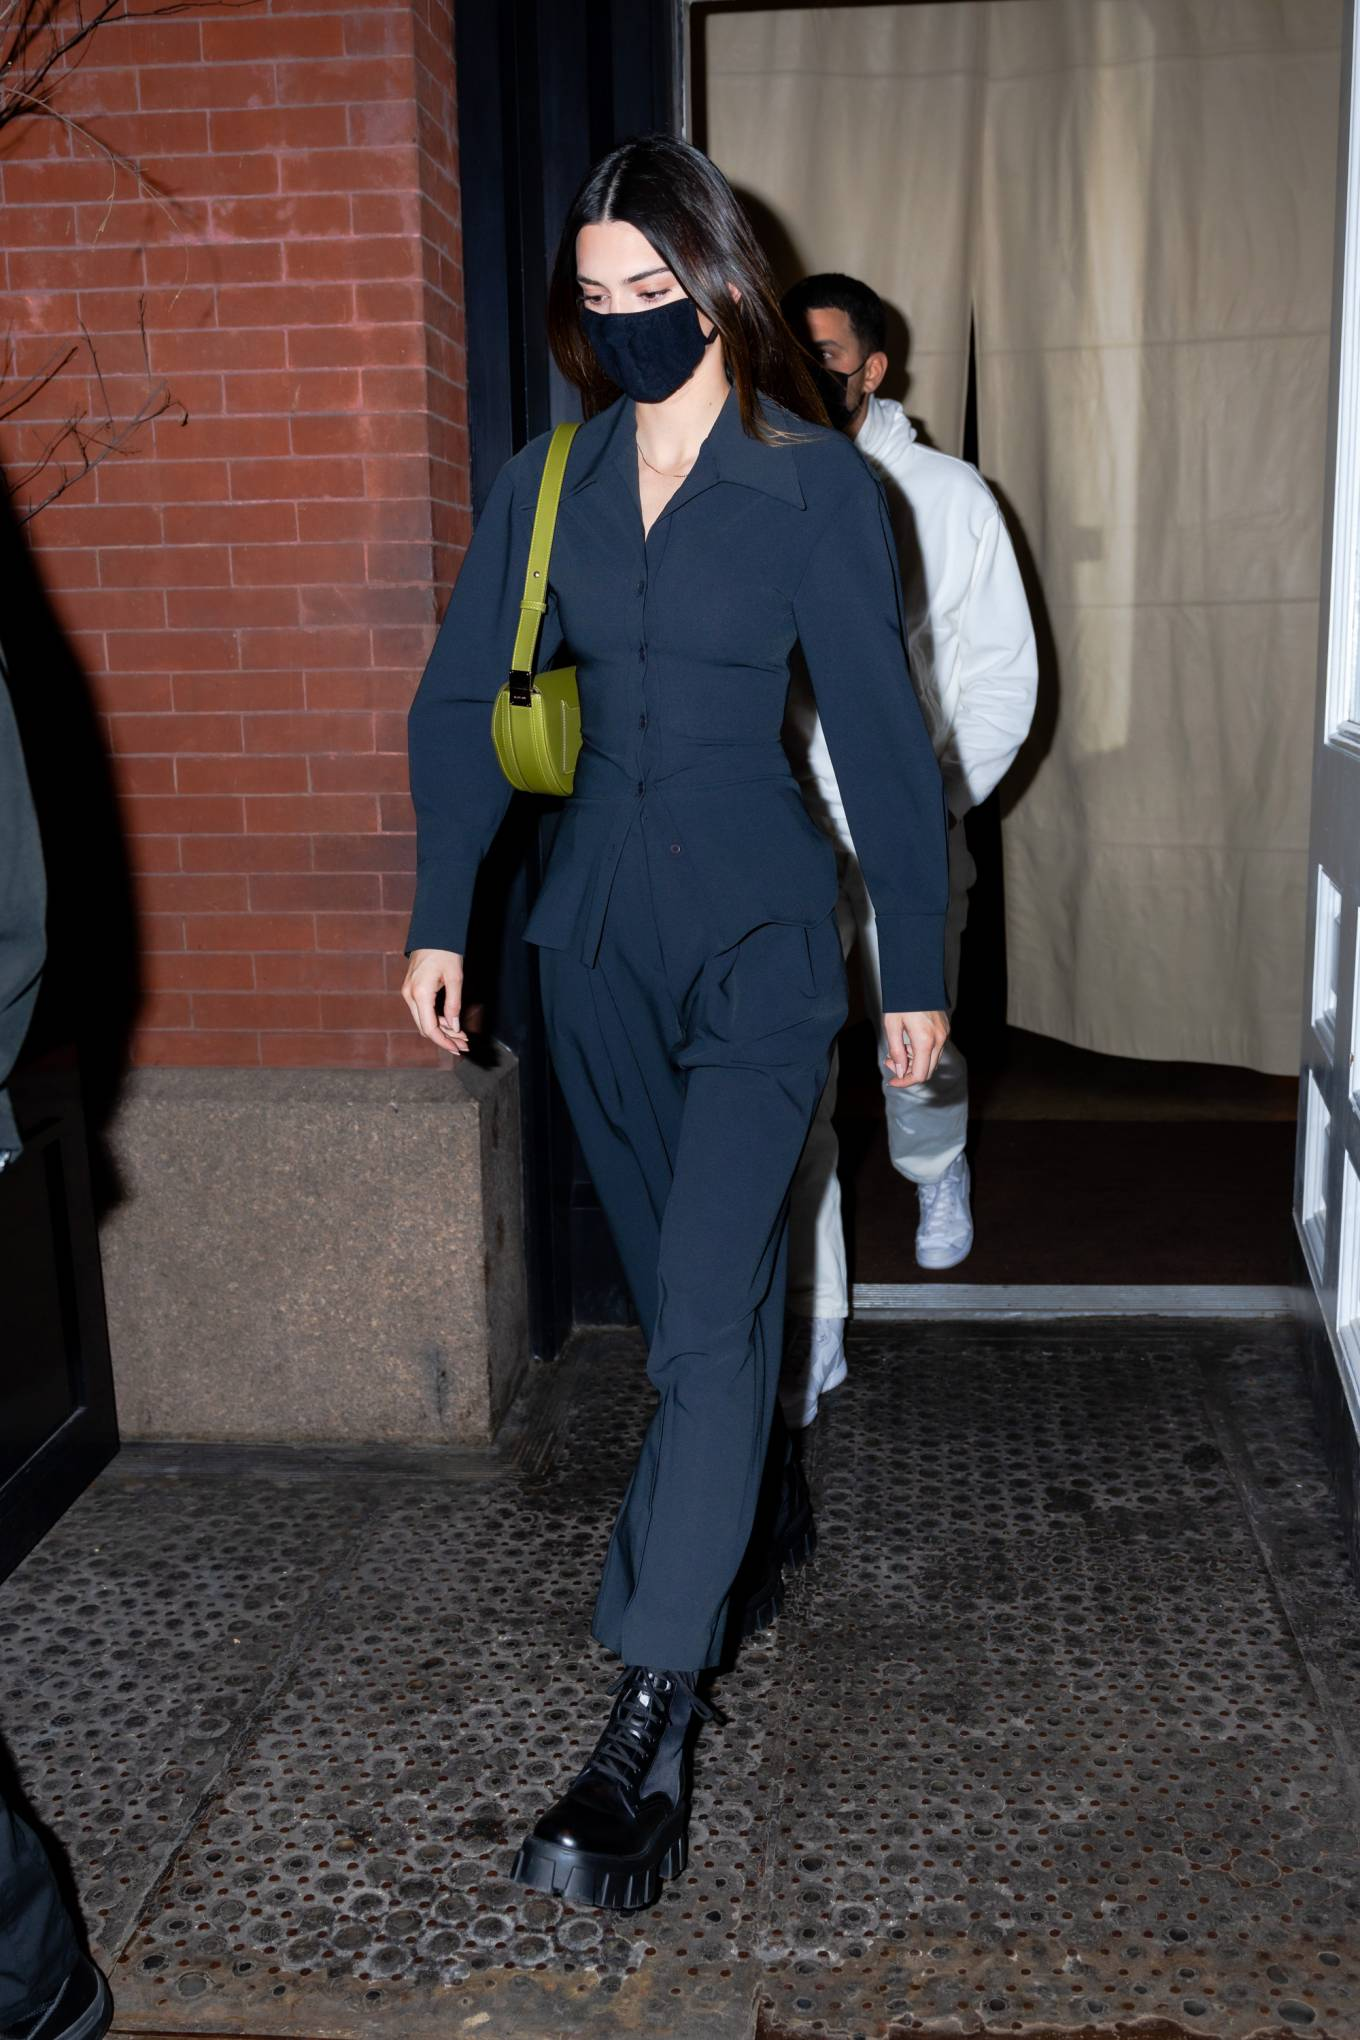 Kendall Jenner donning round black Prada lace-up combat boots with platform heels and attached removable mini bag